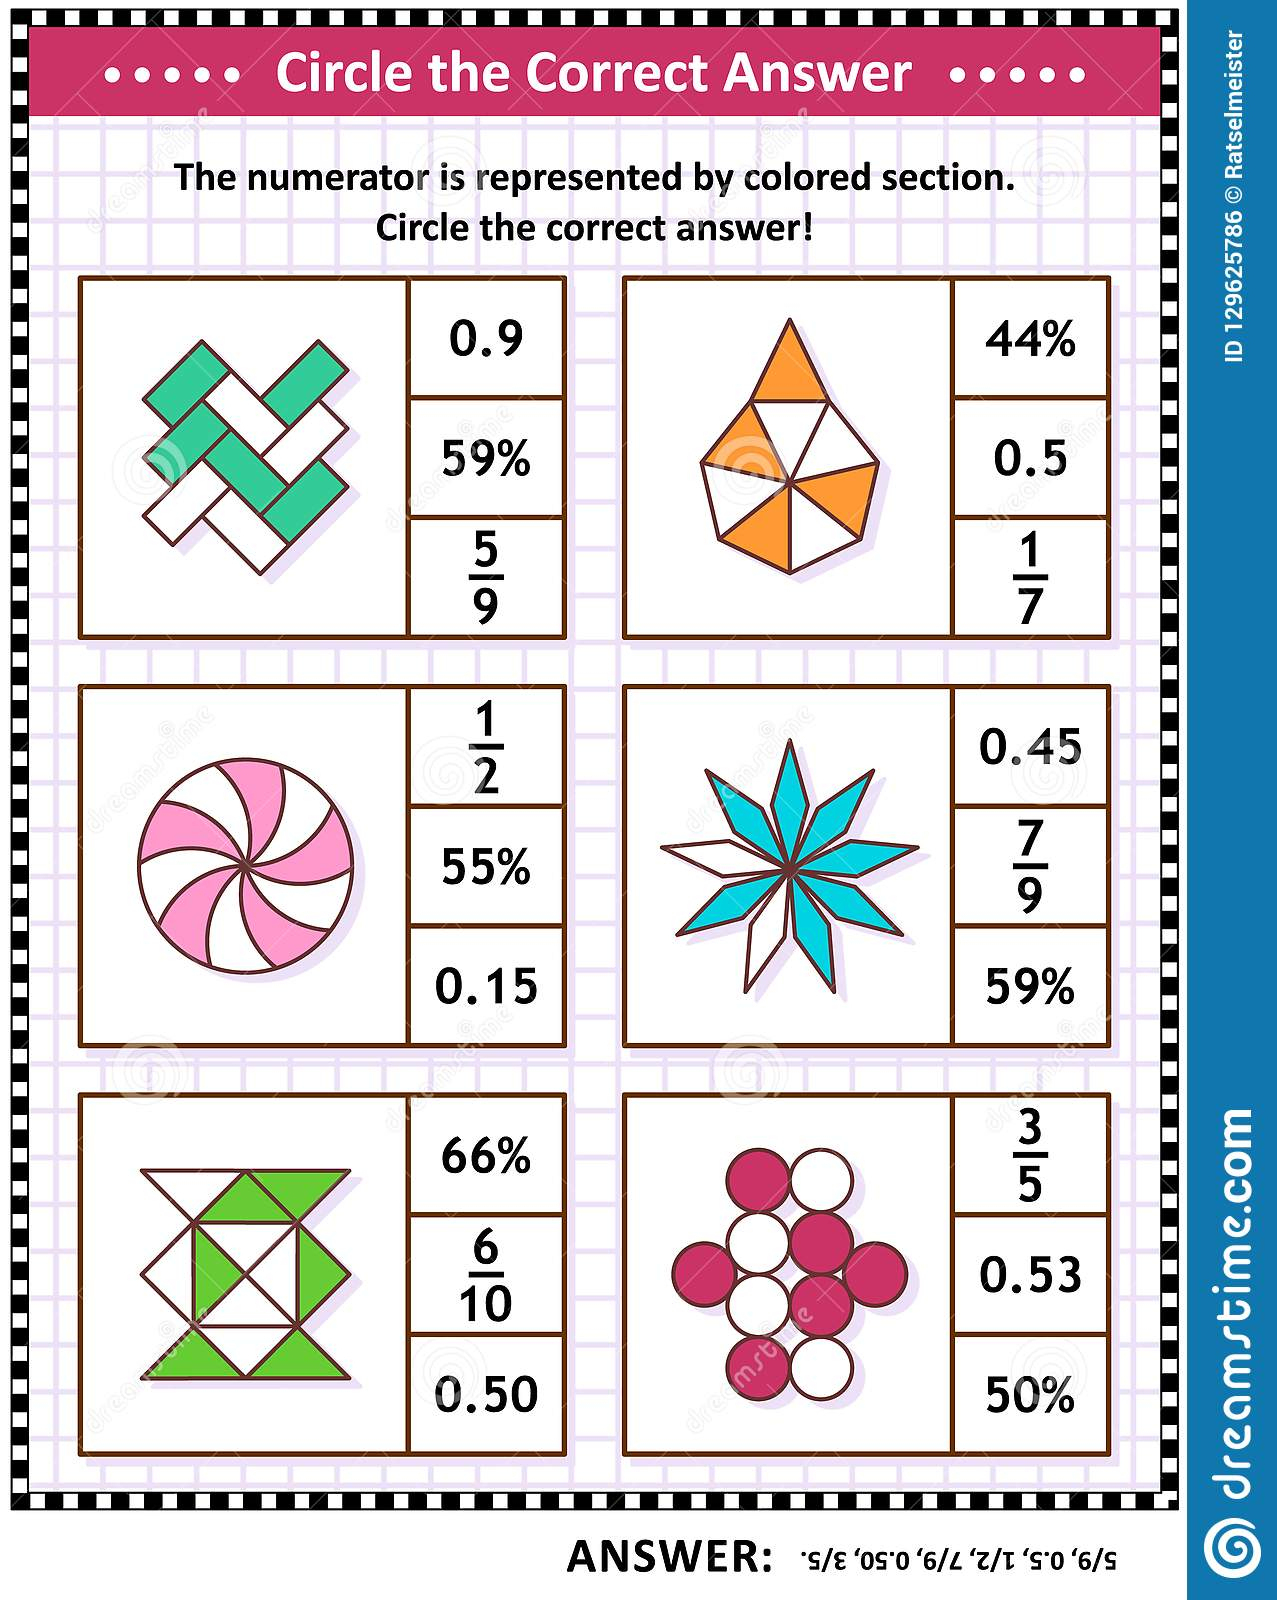 Math Skills And Iq Training Visual Puzzle Or Worksheet For